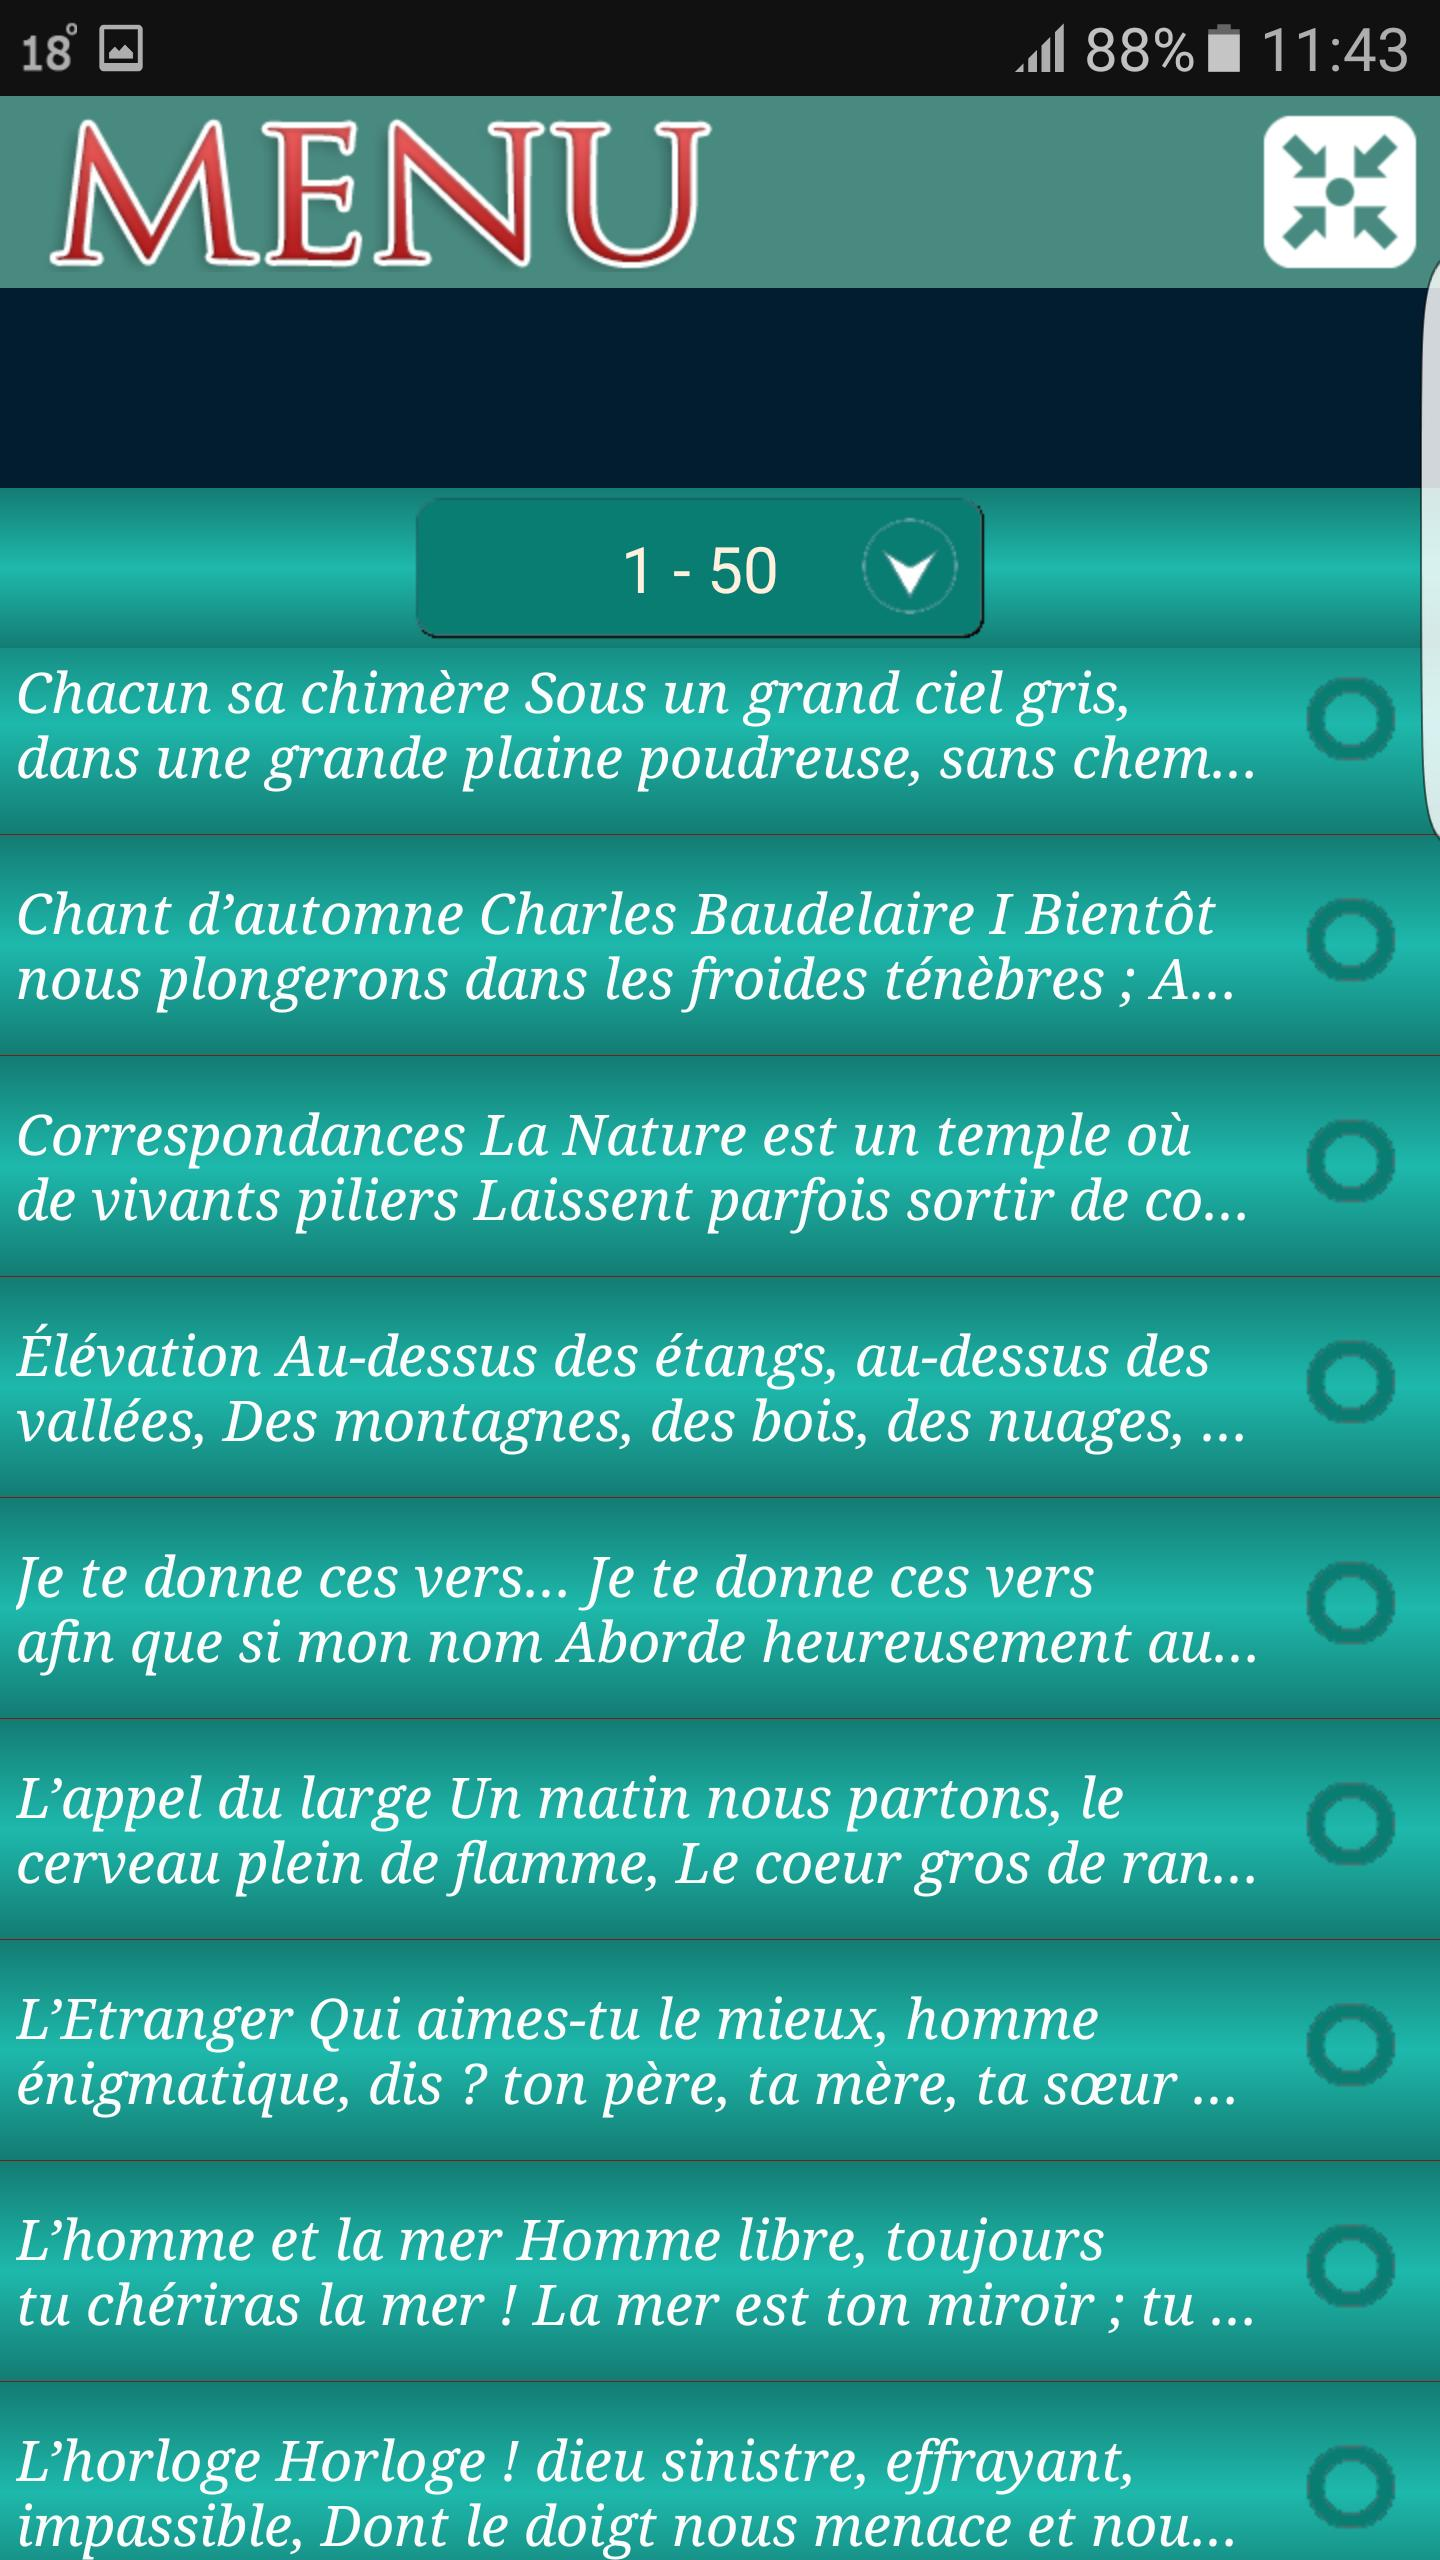 Poéme Romantique 2016 For Android Apk Download